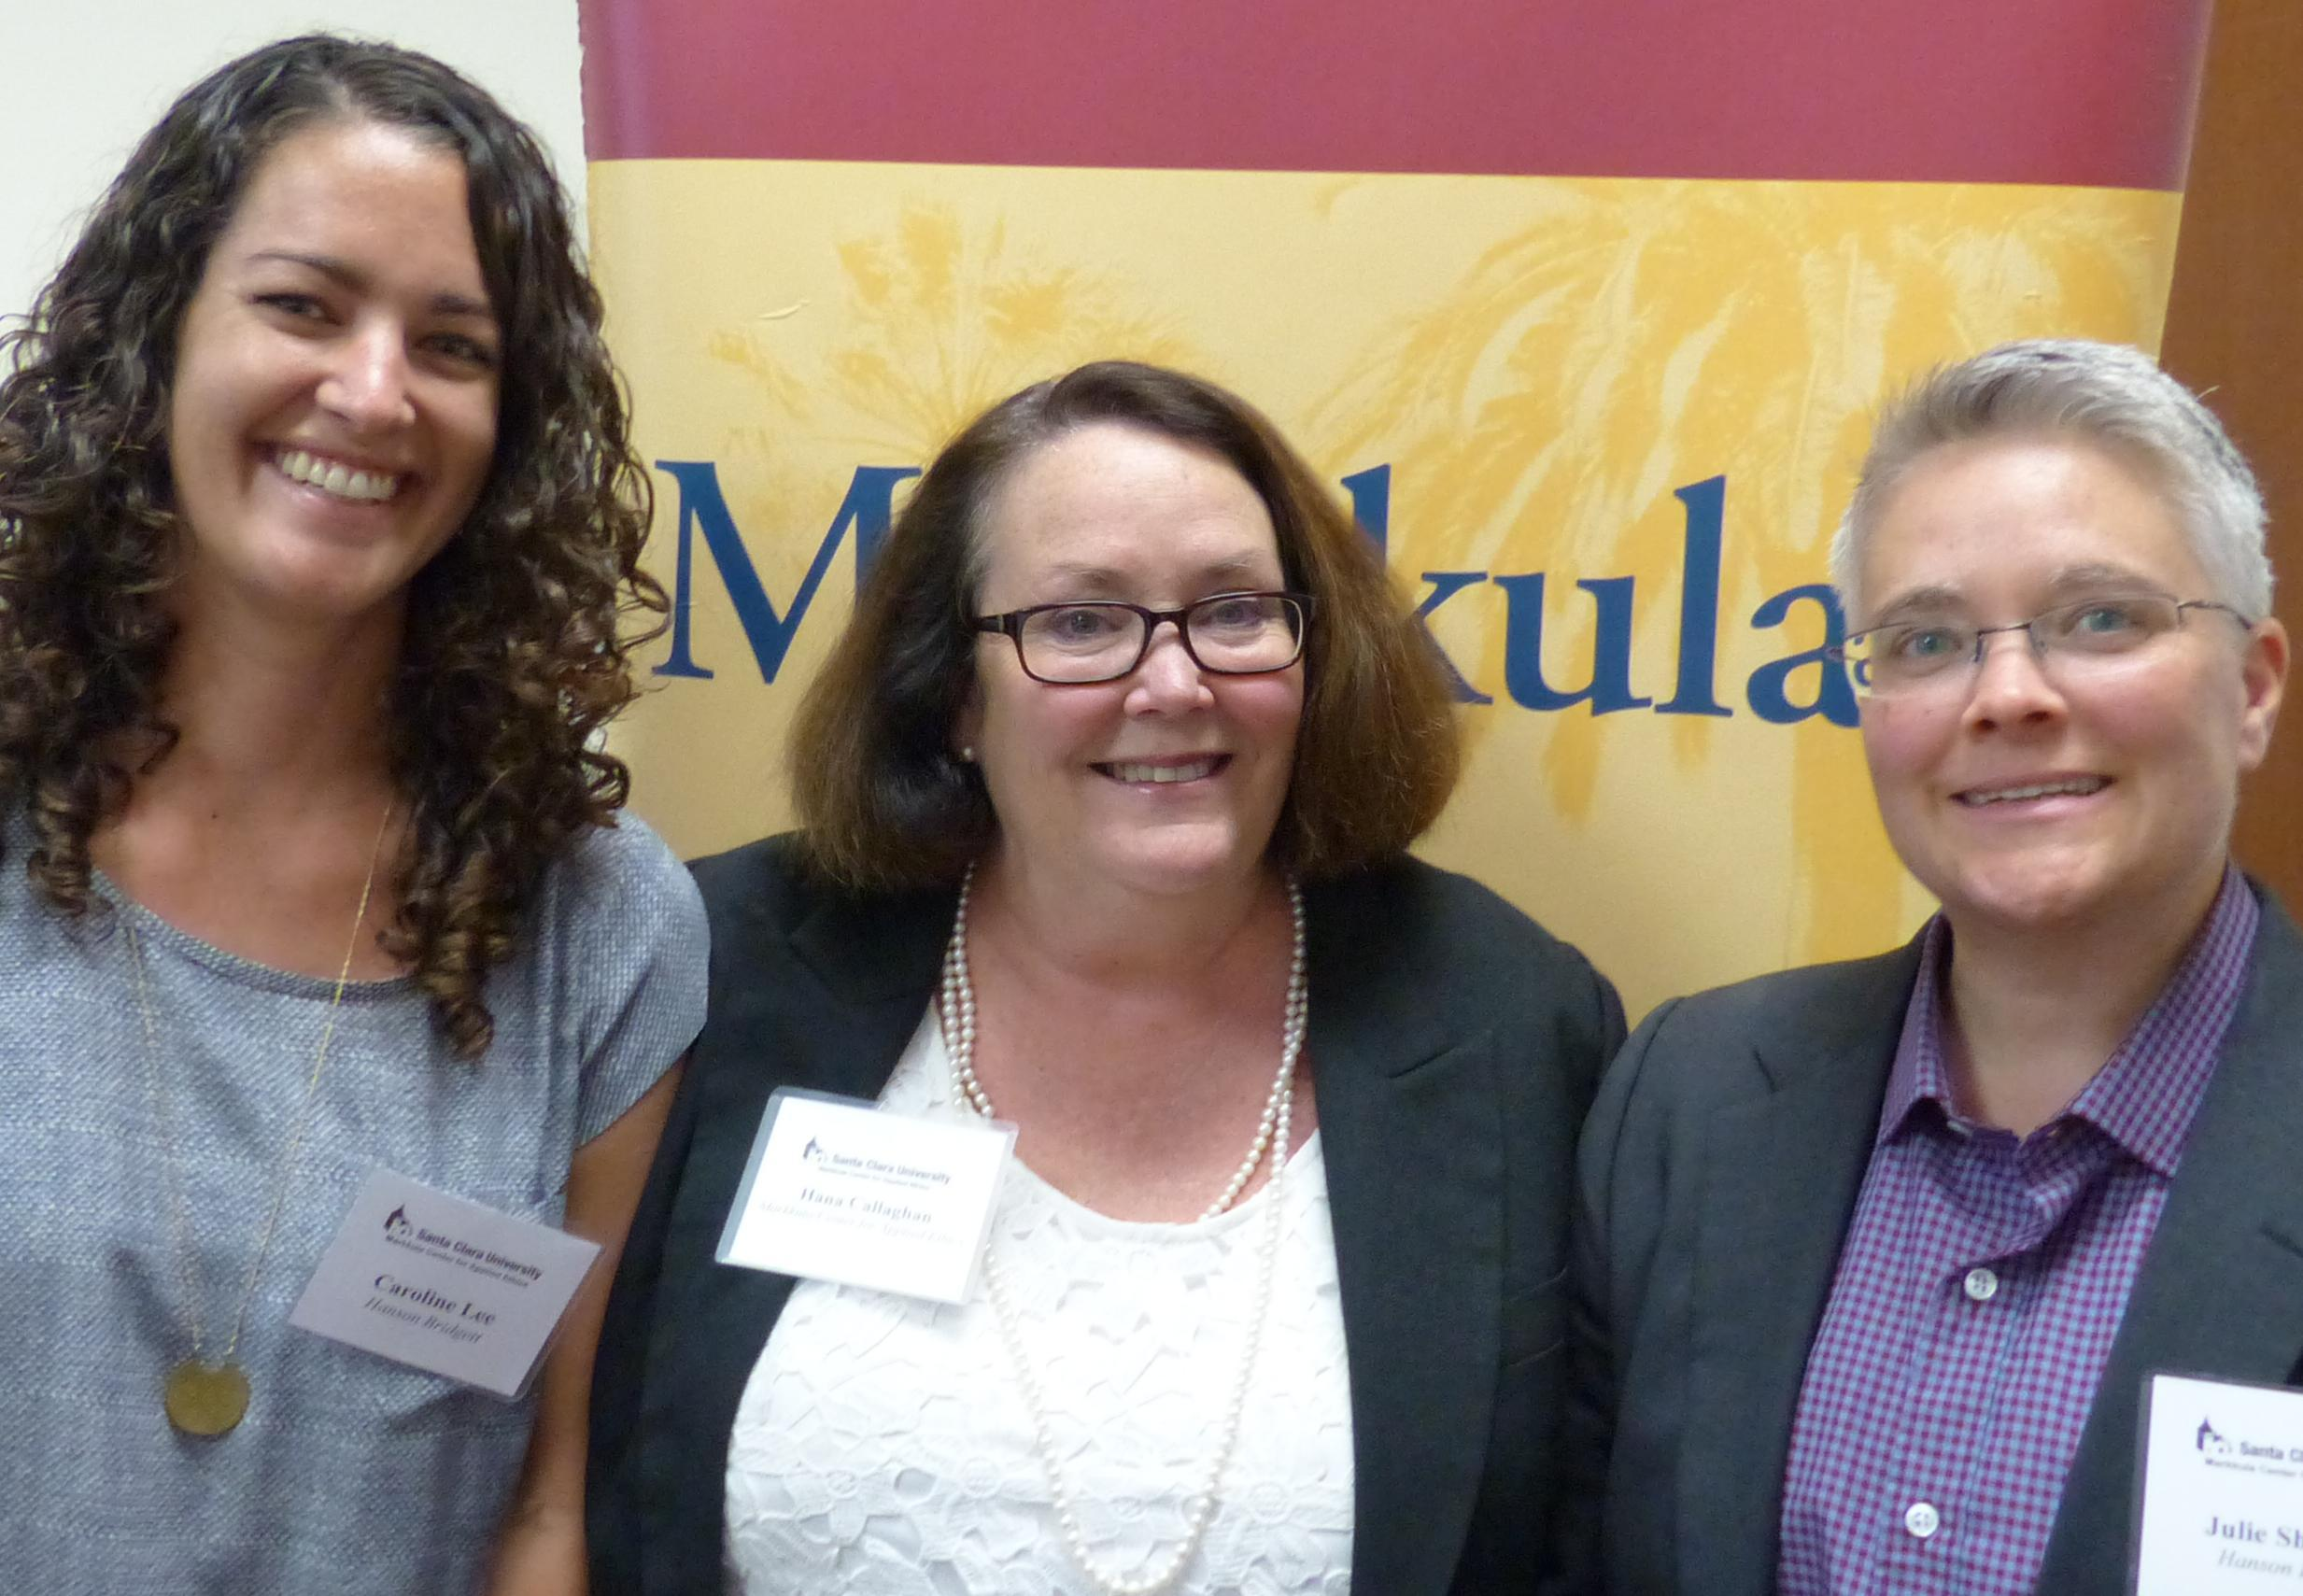 Hana Callaghan, Julie Sherman, and Caroline Lee at the August 21, 2015 Public Sector Roundtable